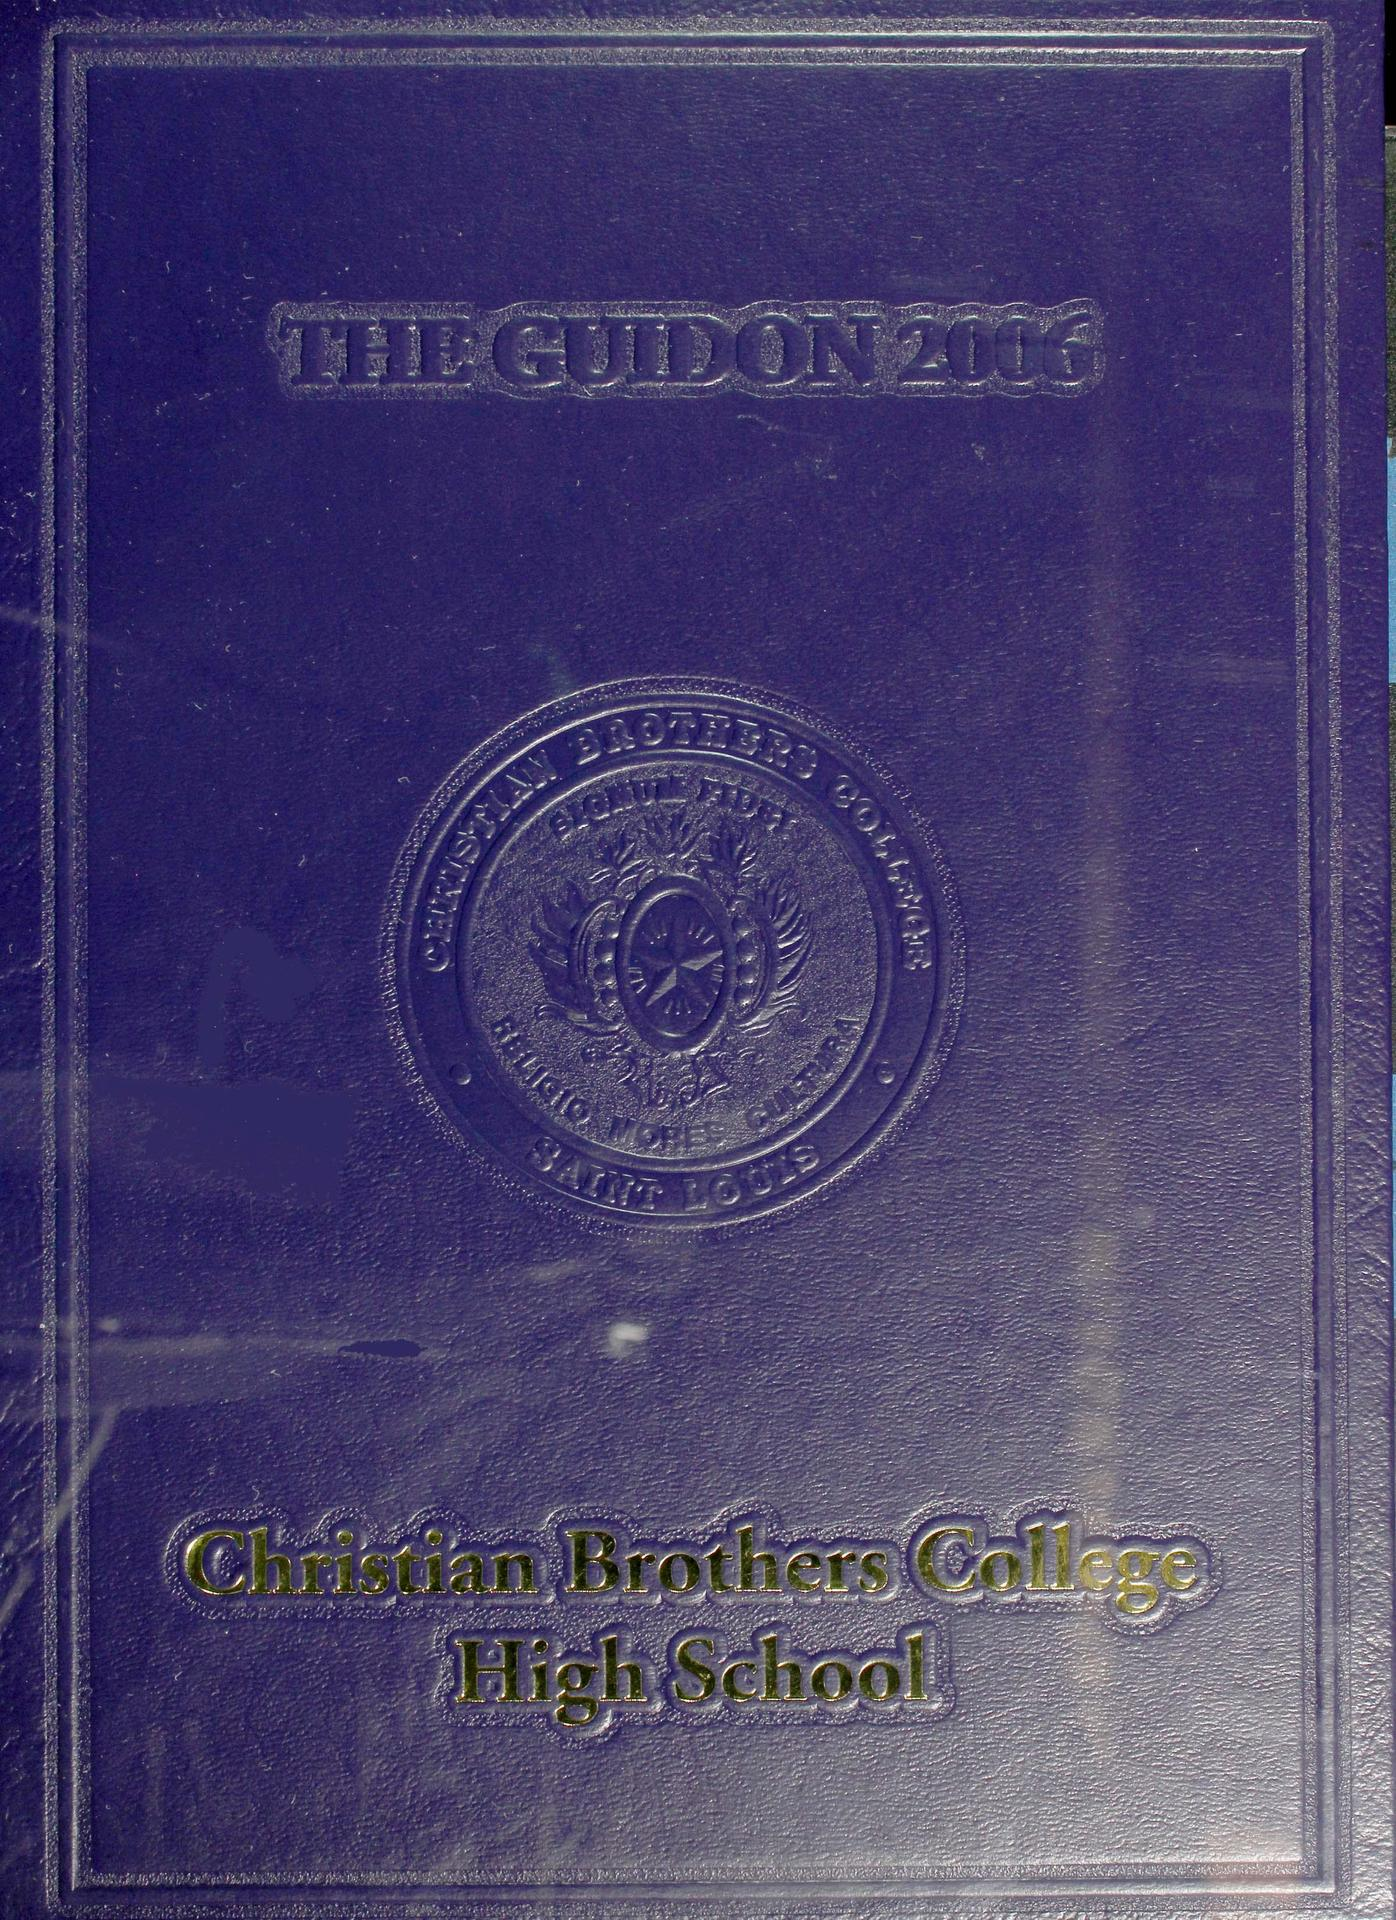 2006 CBC Yearbook